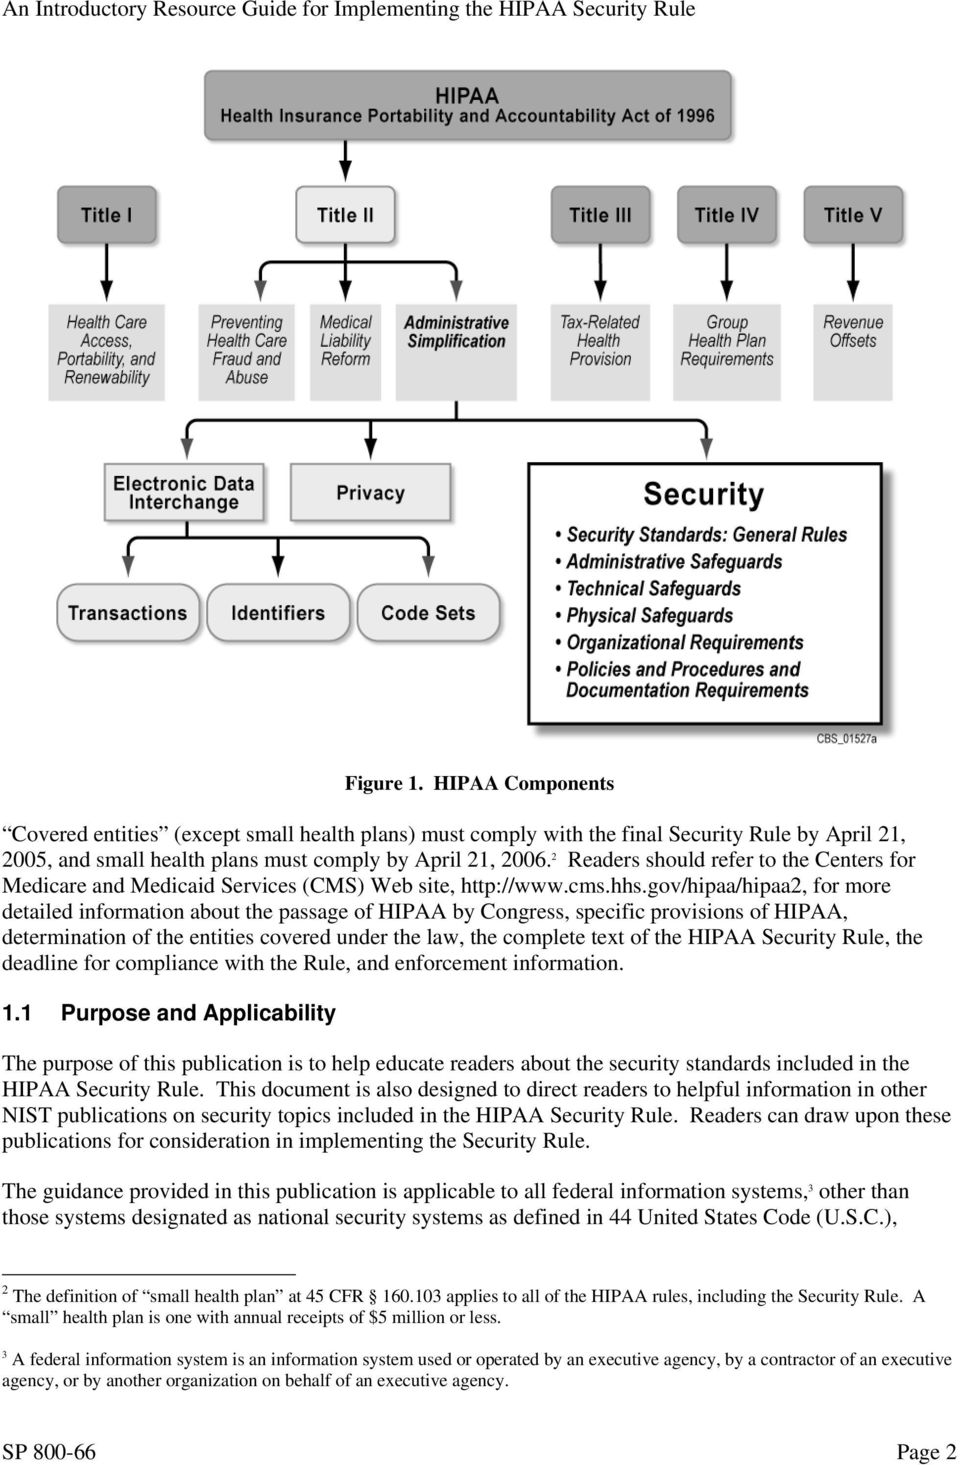 gov/hipaa/hipaa2, for more detailed information about the passage of HIPAA by Congress, specific provisions of HIPAA, determination of the entities covered under the law, the complete text of the